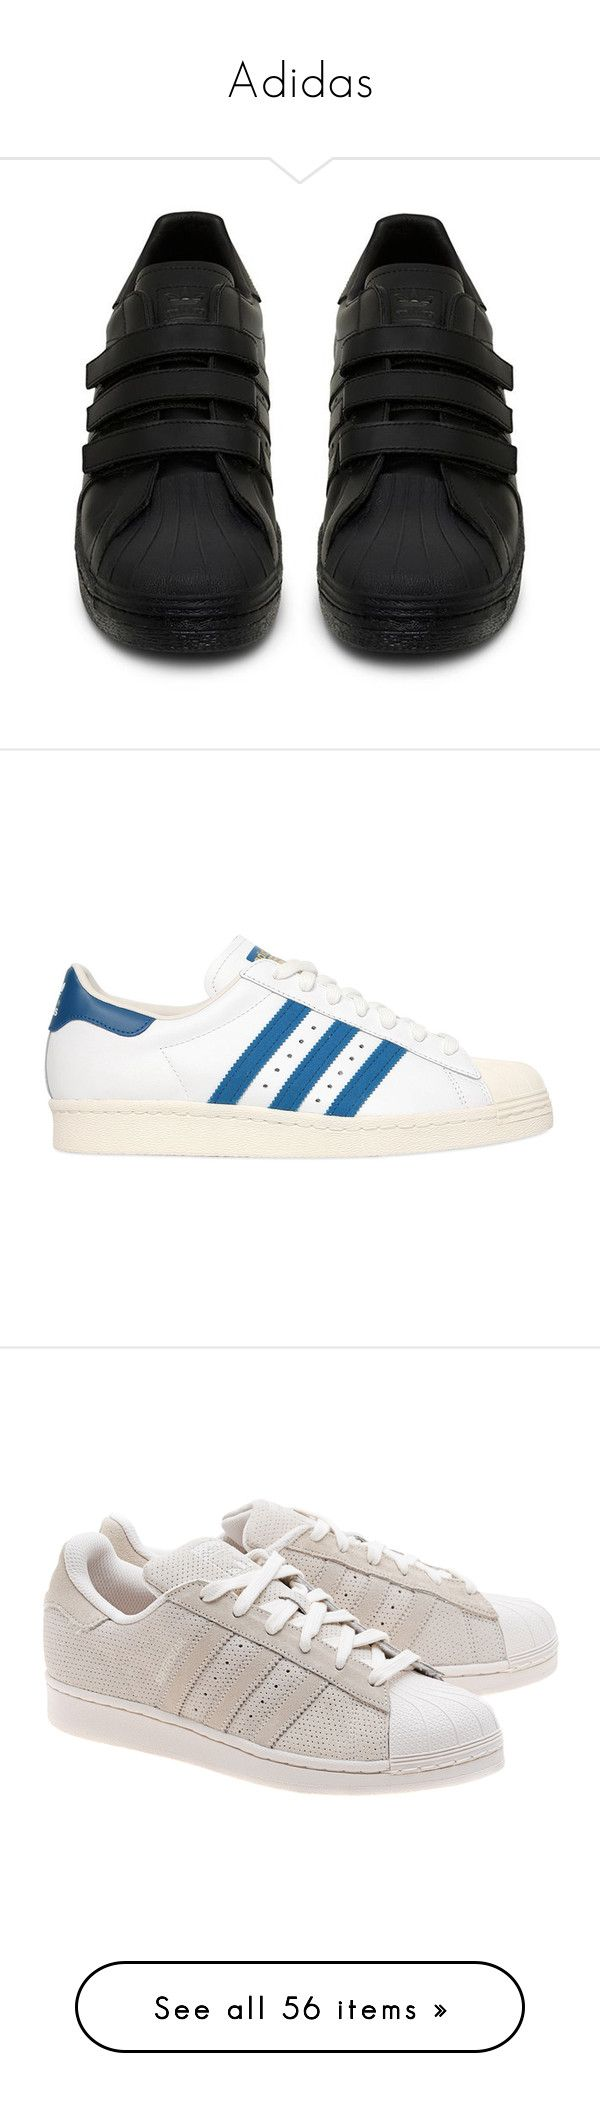 """""""Adidas"""" by doggydoddyfroggymoppy ❤ liked on Polyvore featuring shoes, sneakers, leather shoes, leather low top sneakers, black leather trainers, adidas shoes, low top, adidas, rubber sole shoes and unisex shoes"""